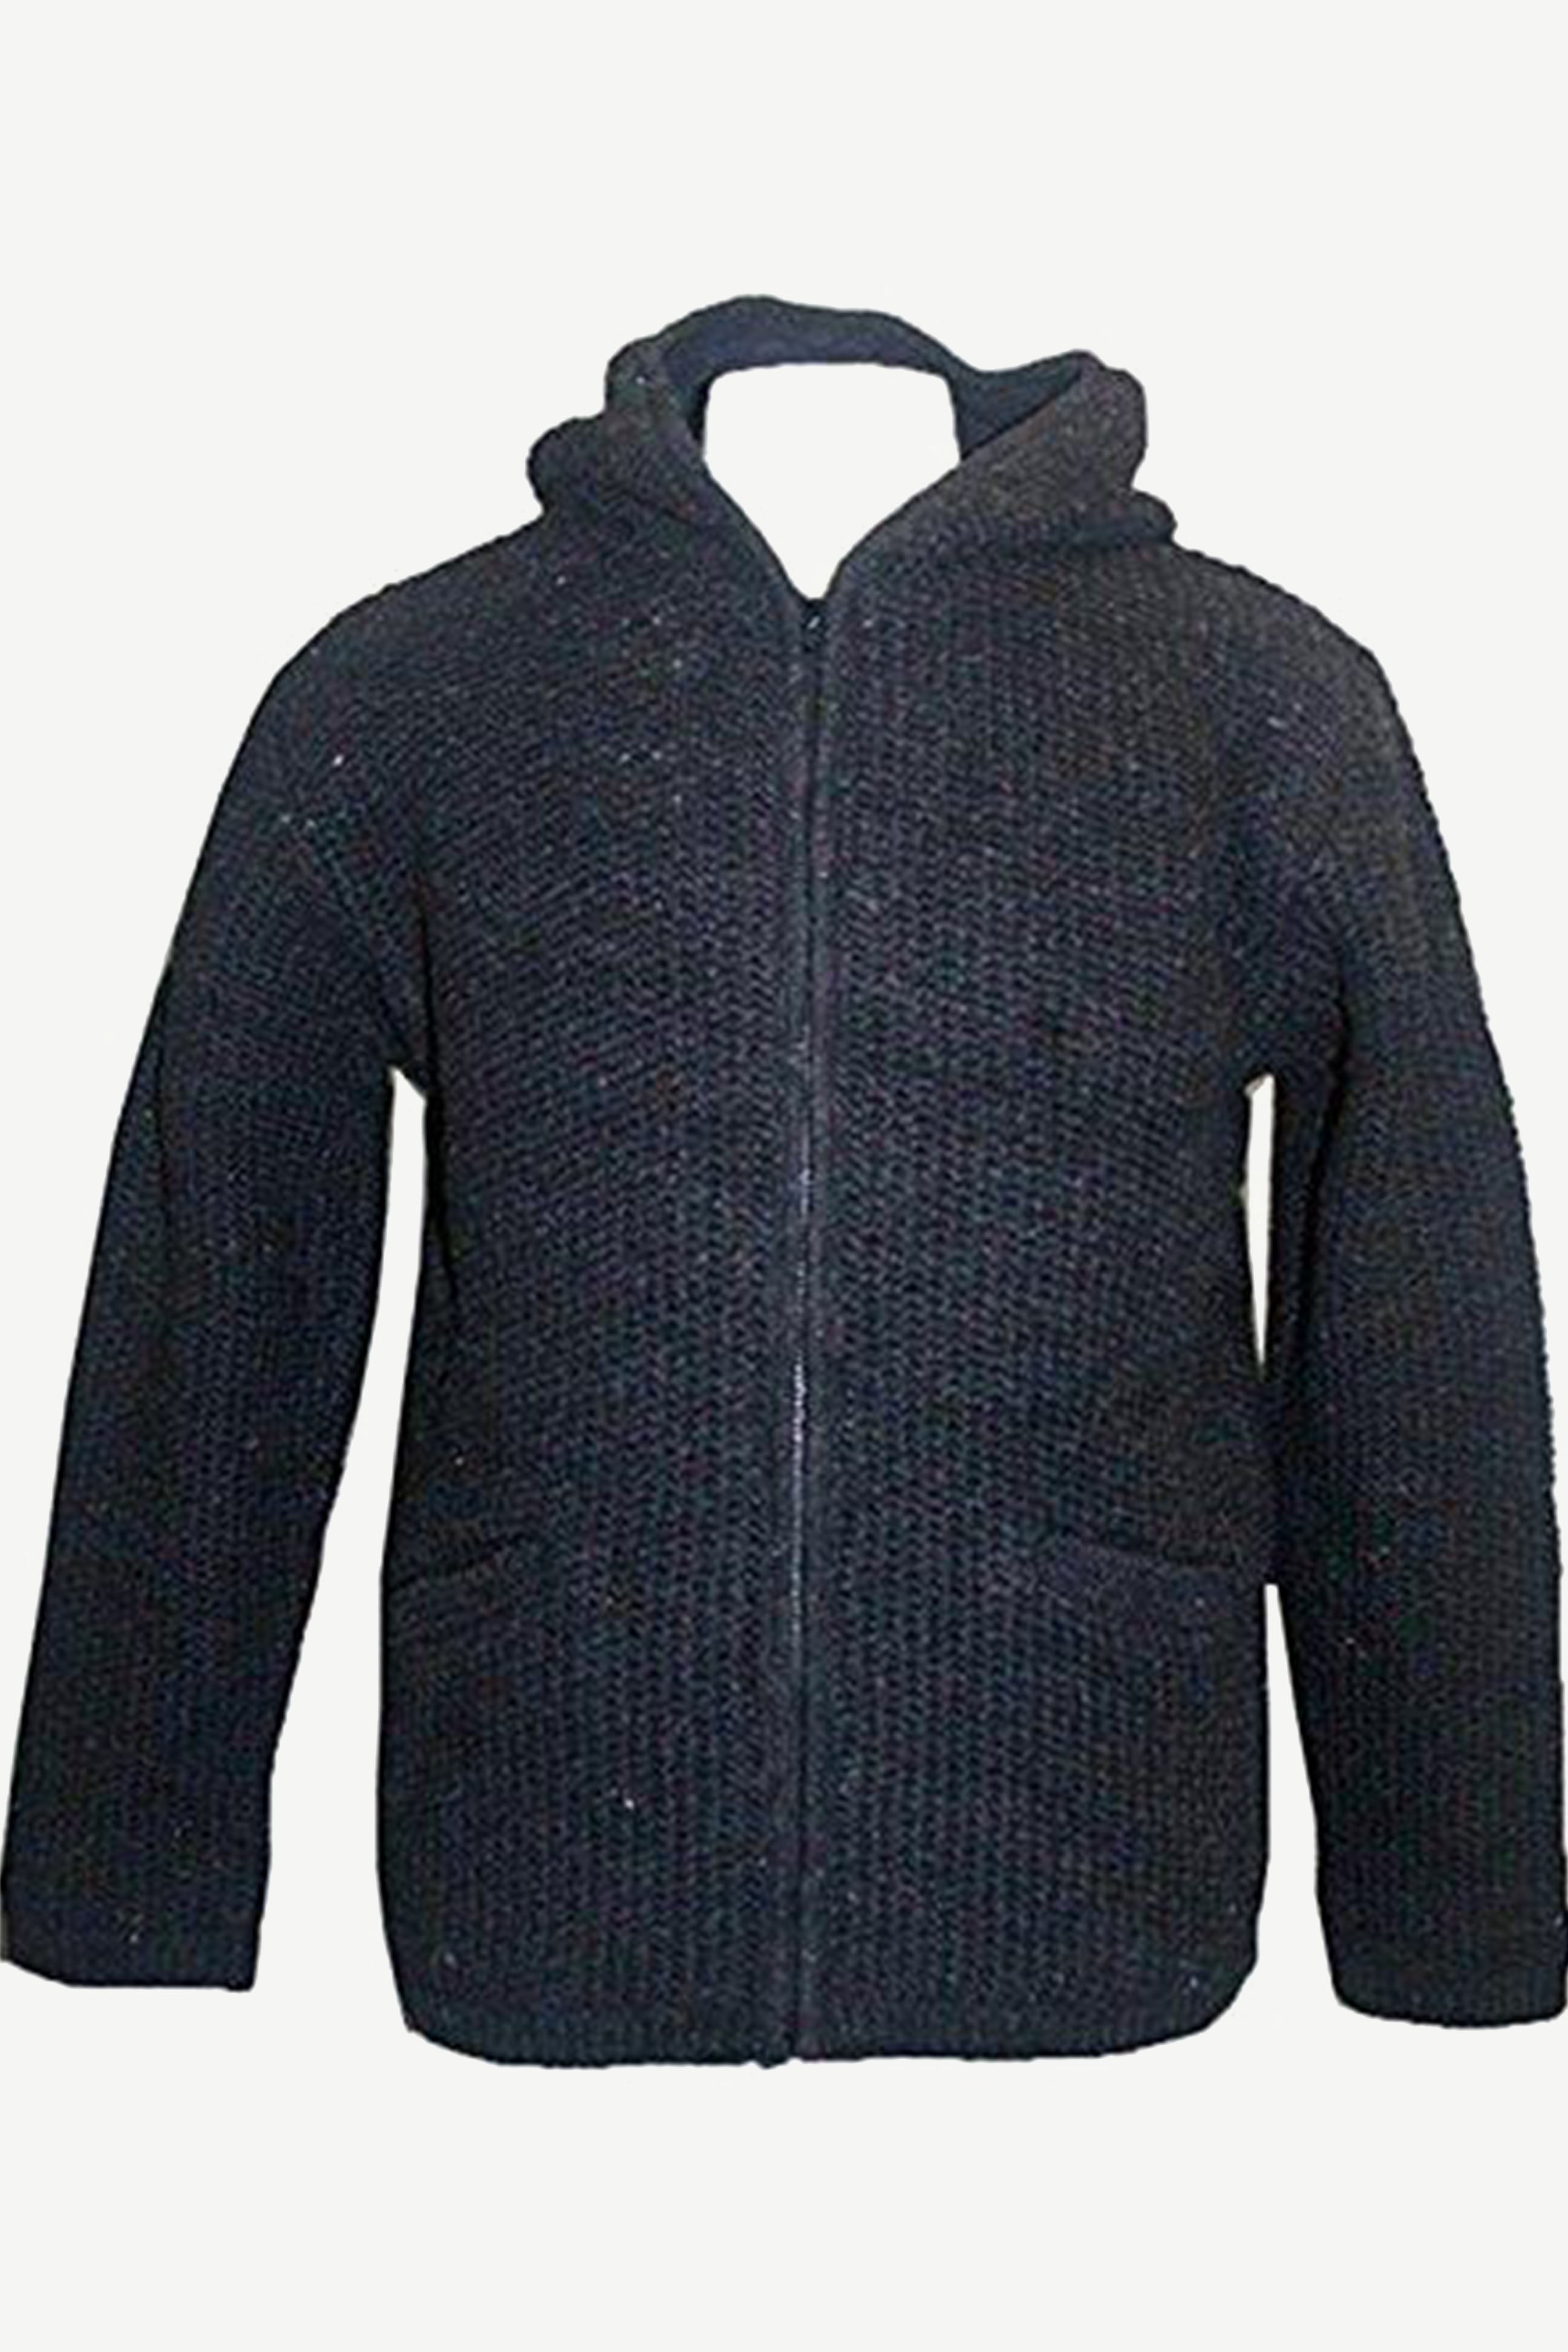 UF 5 Himalayan Lamb's Wool Warm Fleece Hoodie Sweater Coat Jacket - Agan Traders, Charcoal